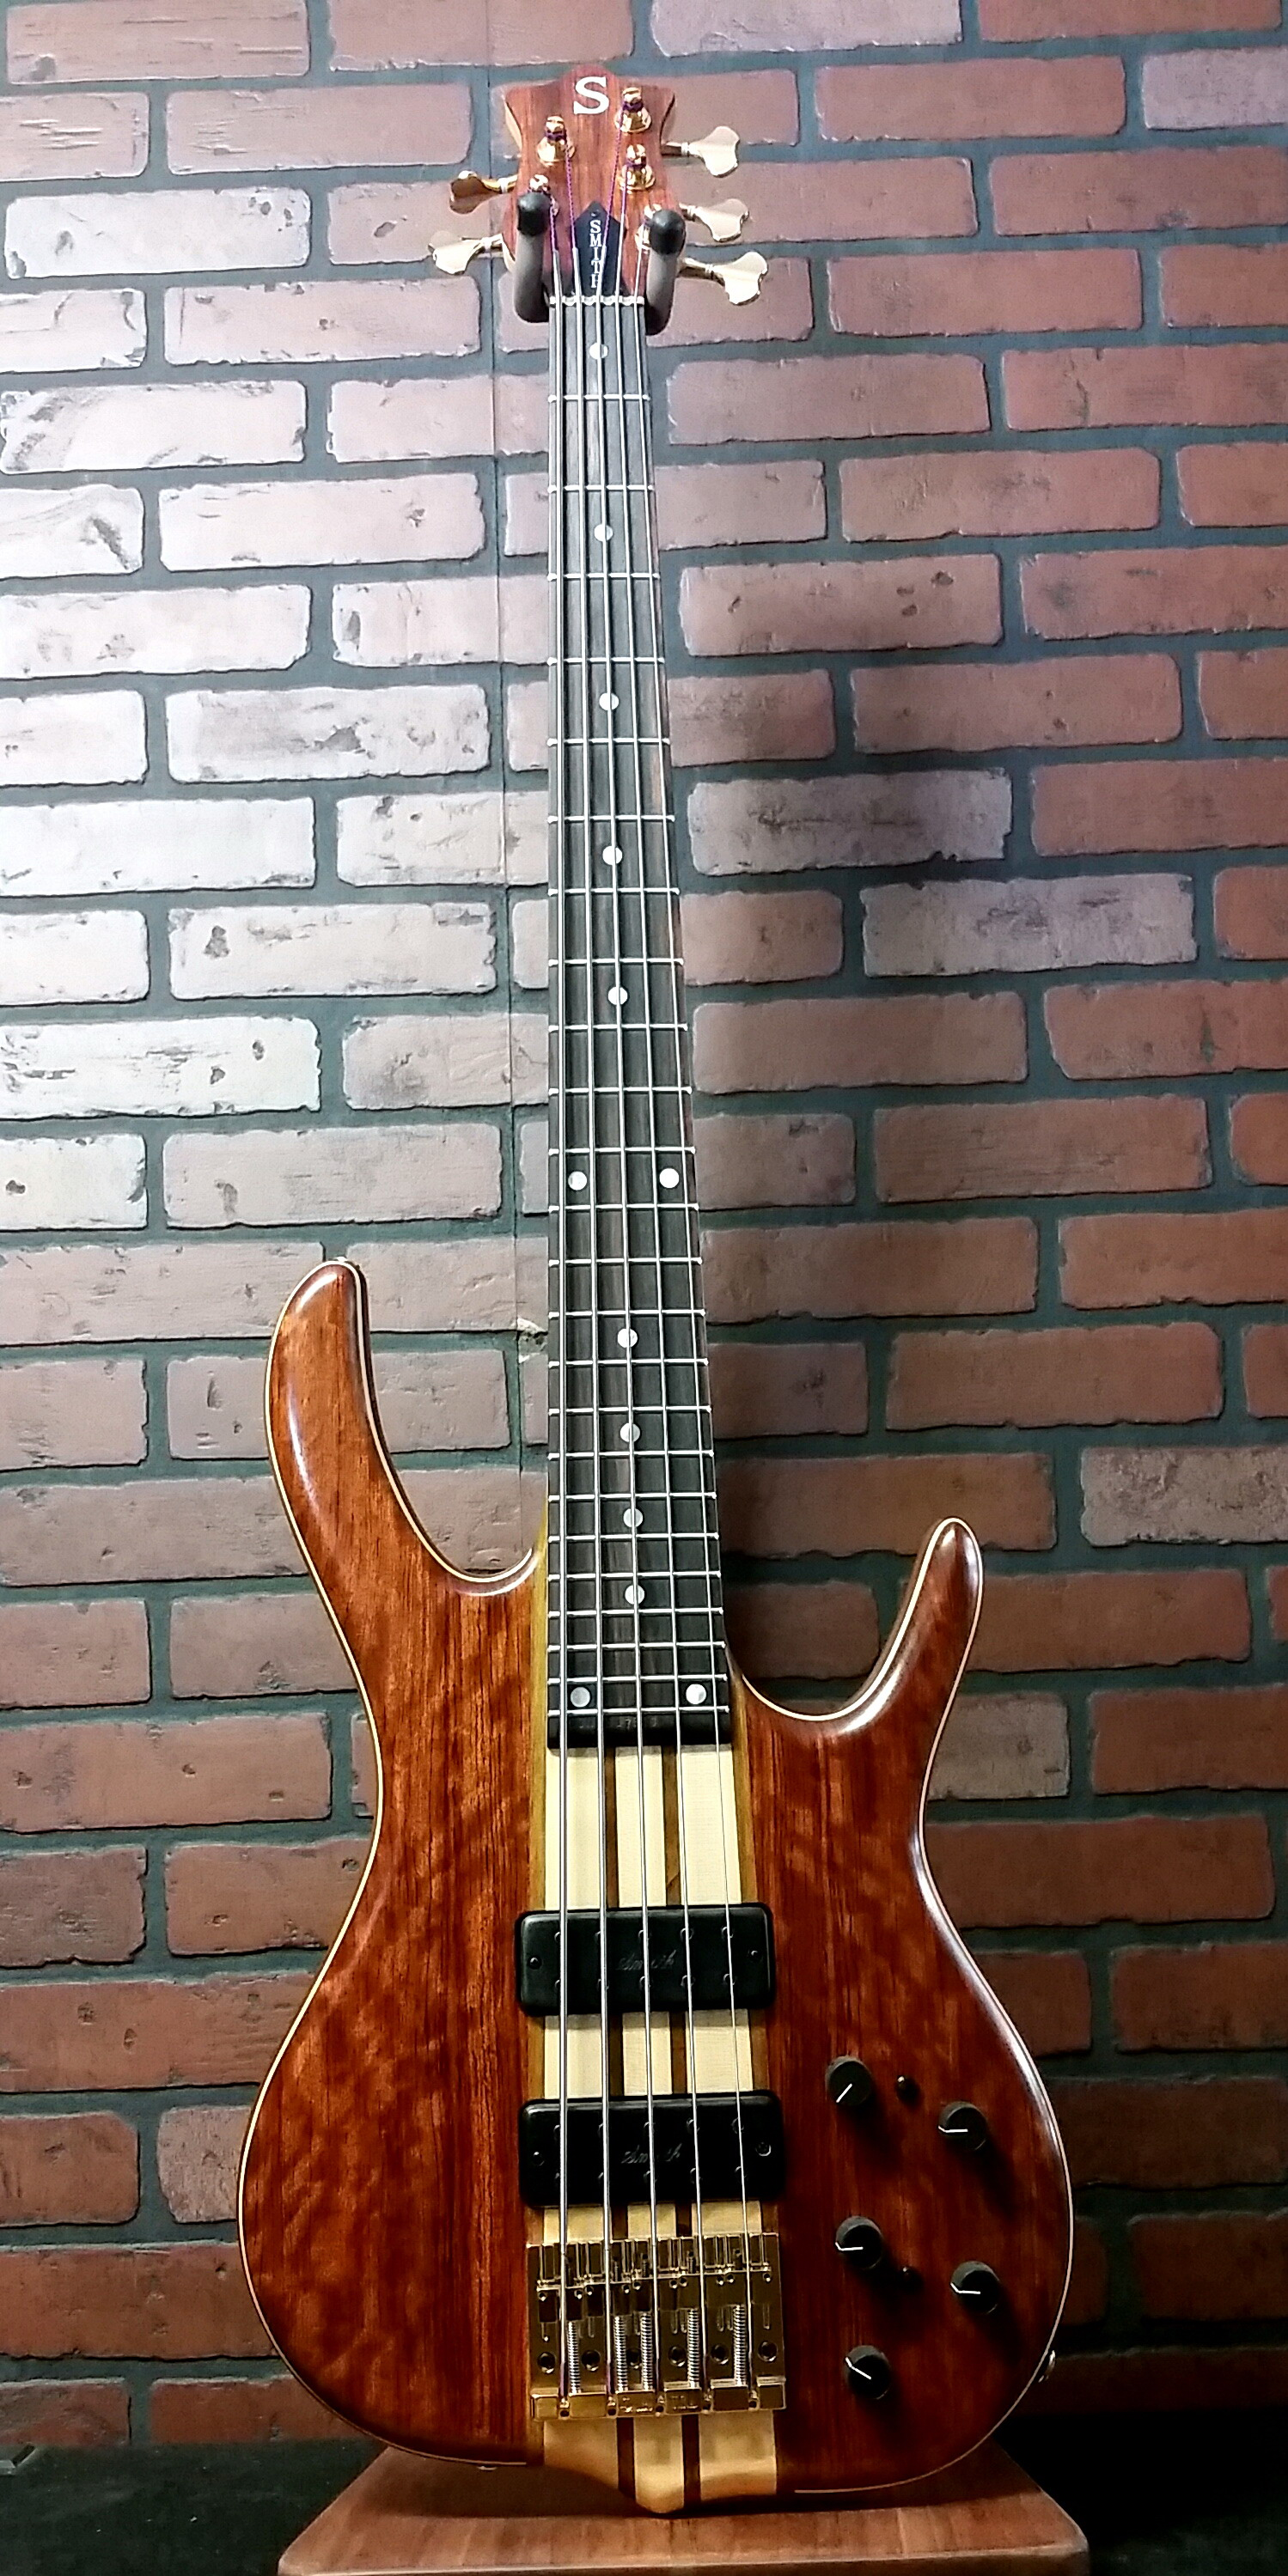 KEN SMITH BSR5GN 5 string bass